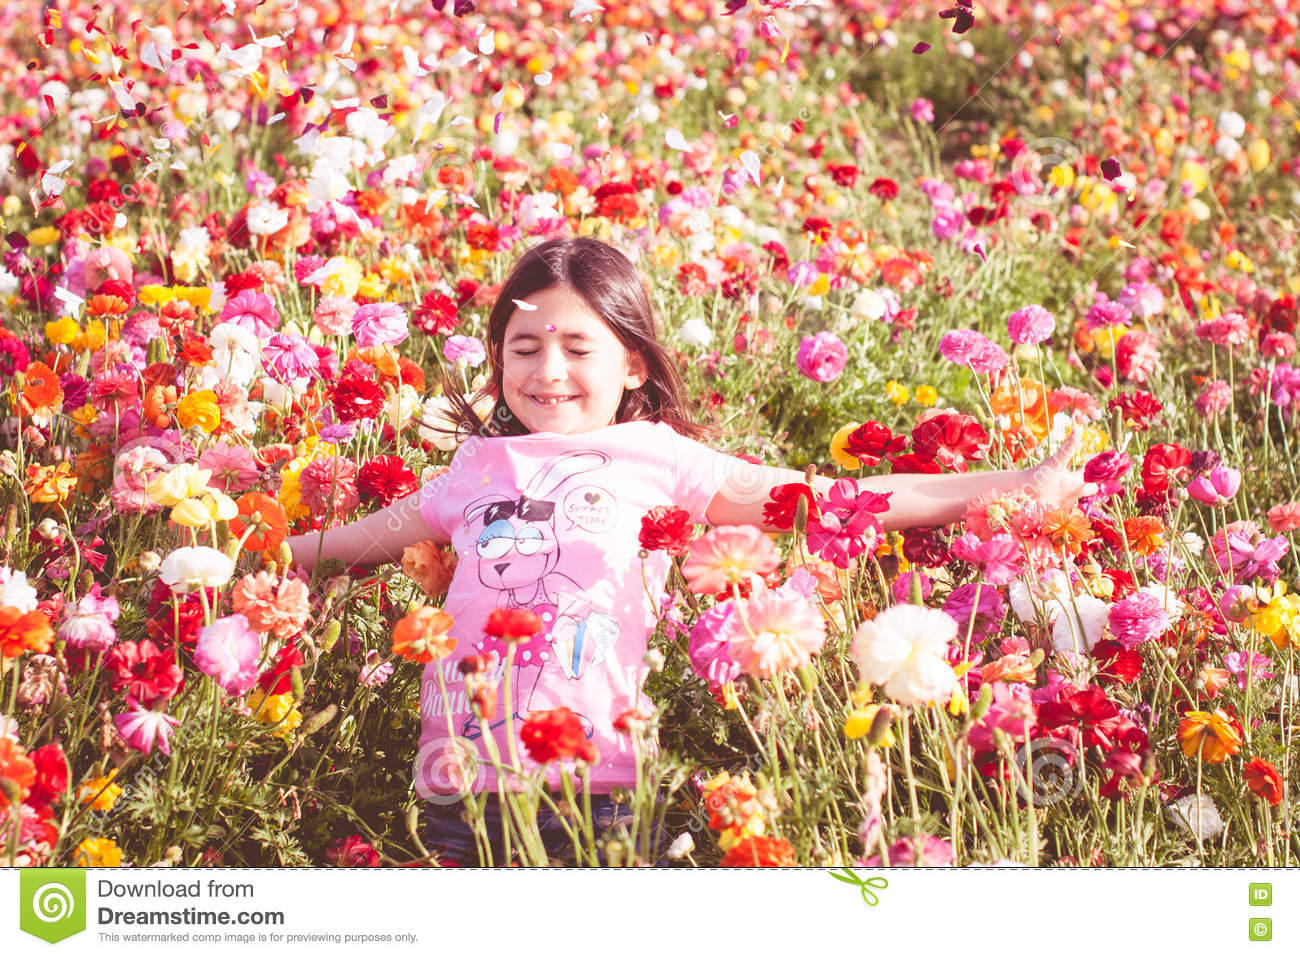 Girl throwing flower petals